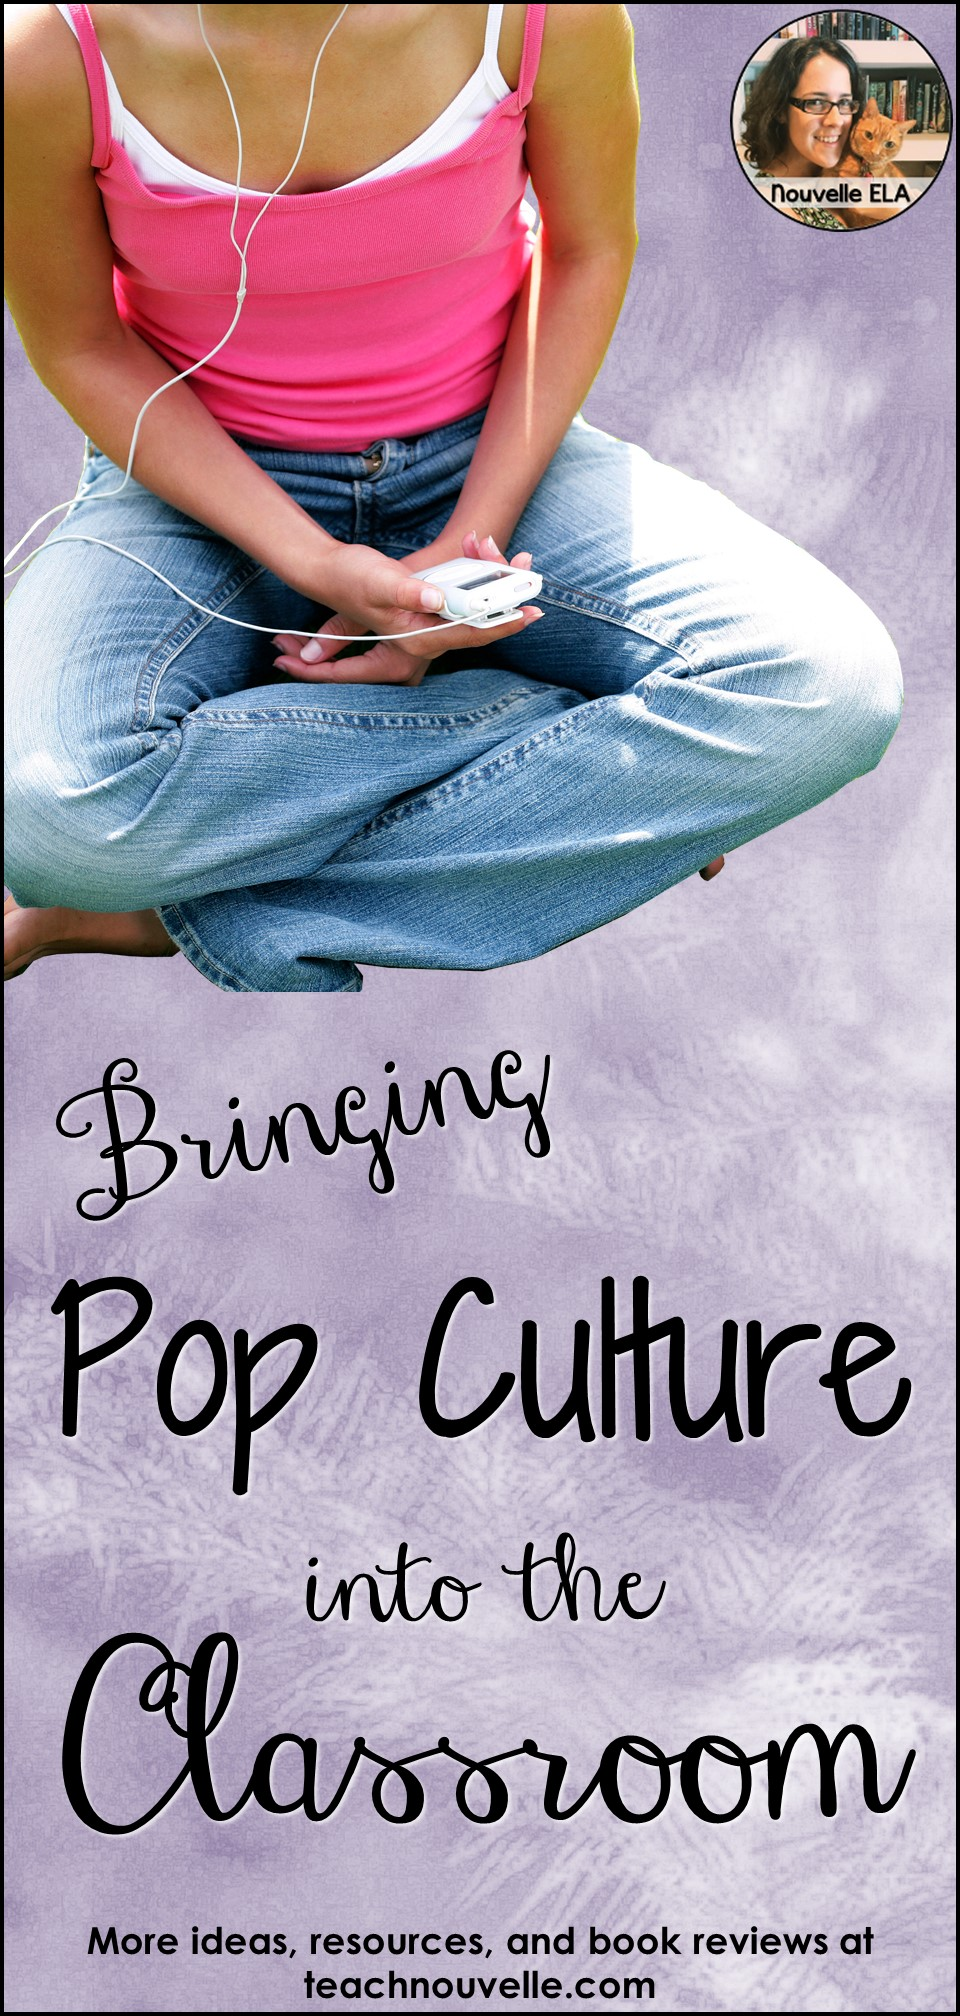 Your students already love pop culture. Why not channel that to help them master ELA skills like storytelling, figurative language, and collaboration? Check out this blog post for more ideas and examples.